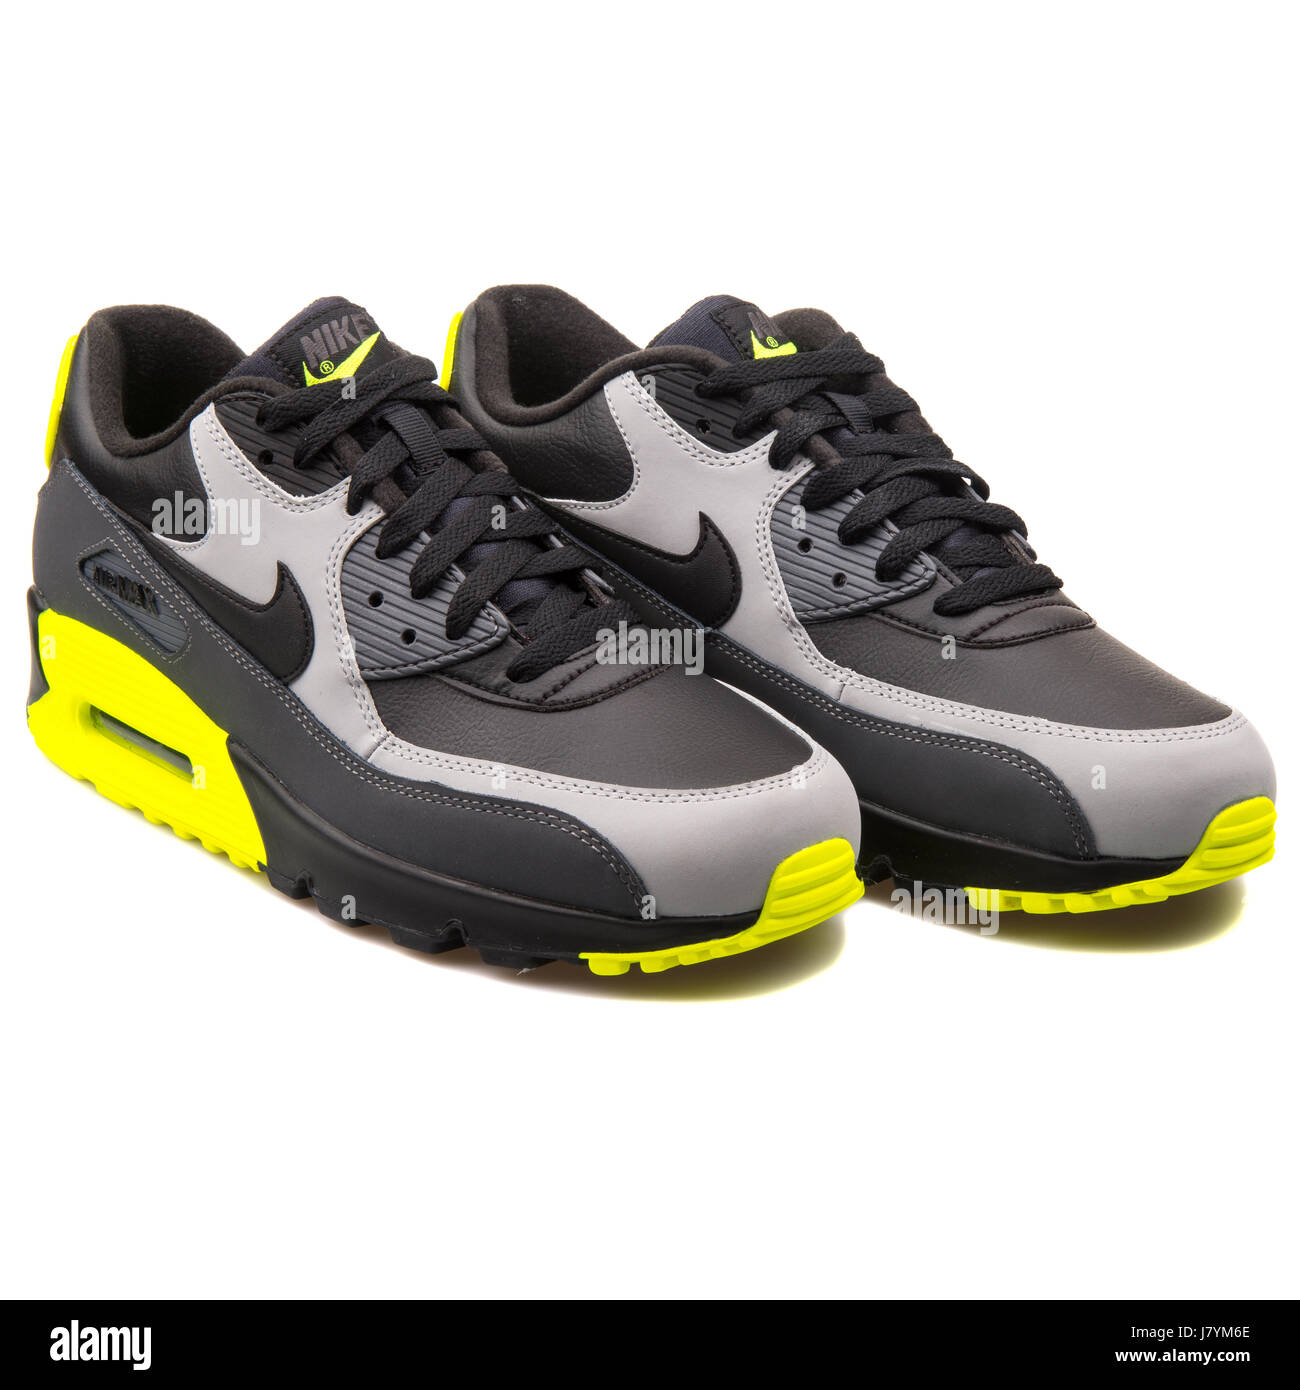 3c16bfb9 Nike Air Max 90 LTR Black Grey and Yellow Men Sports Sneakers - 652980-007